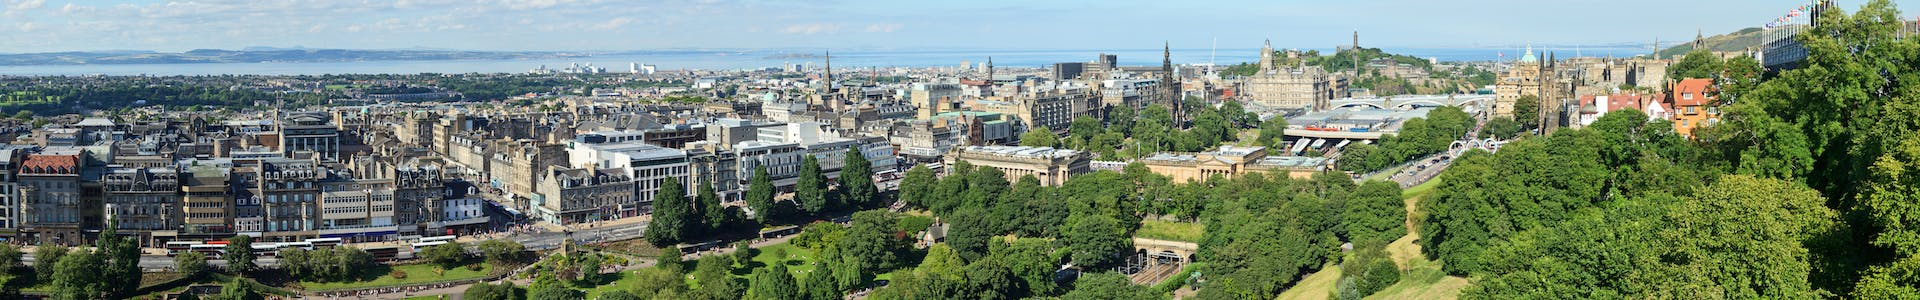 Studying in Edinburgh, United Kingdom